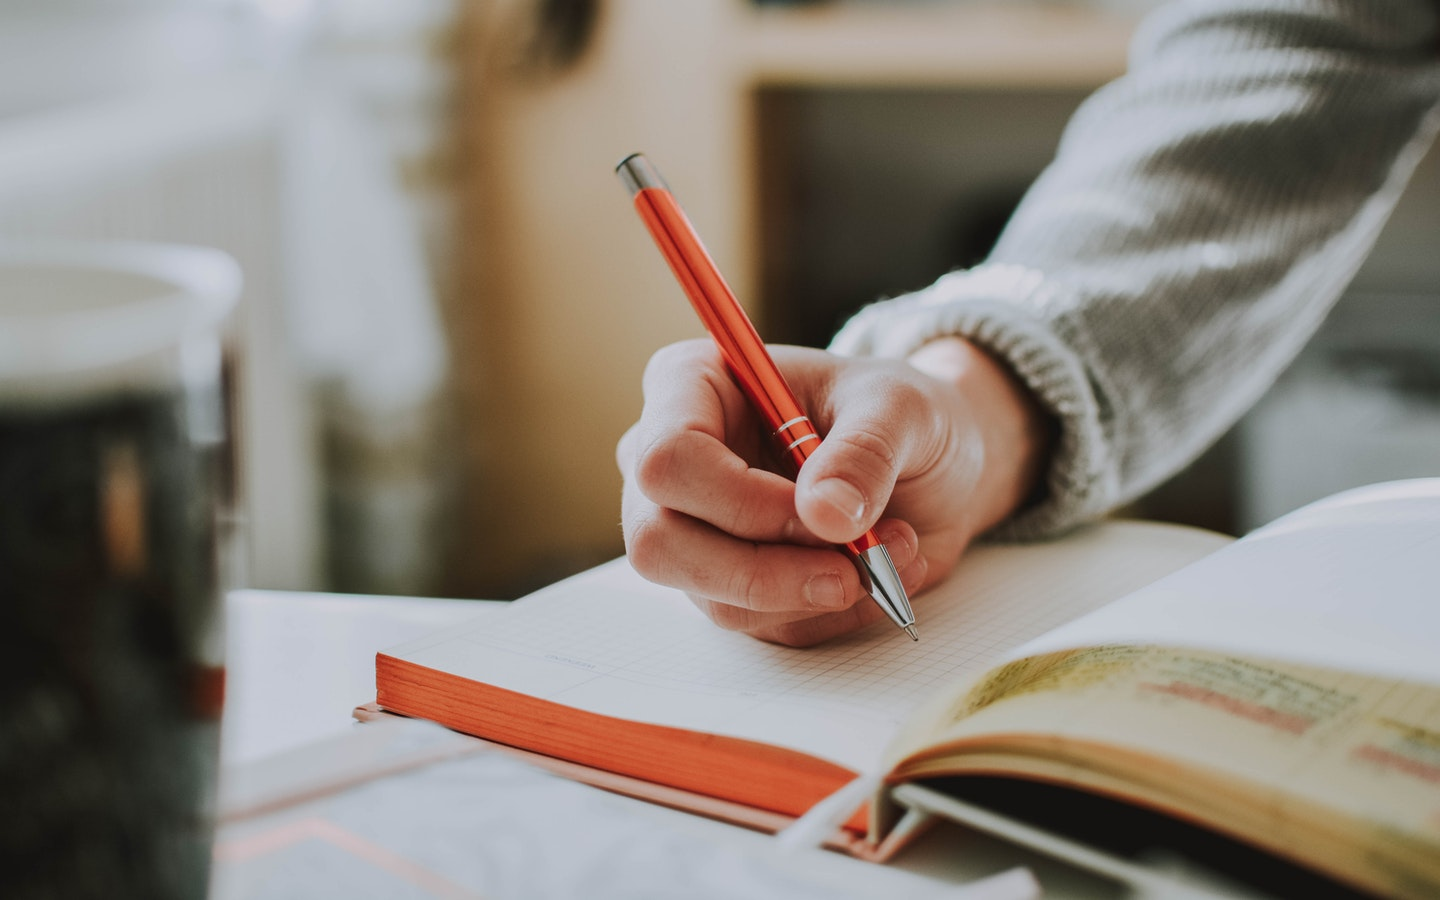 Pen, diary and hand